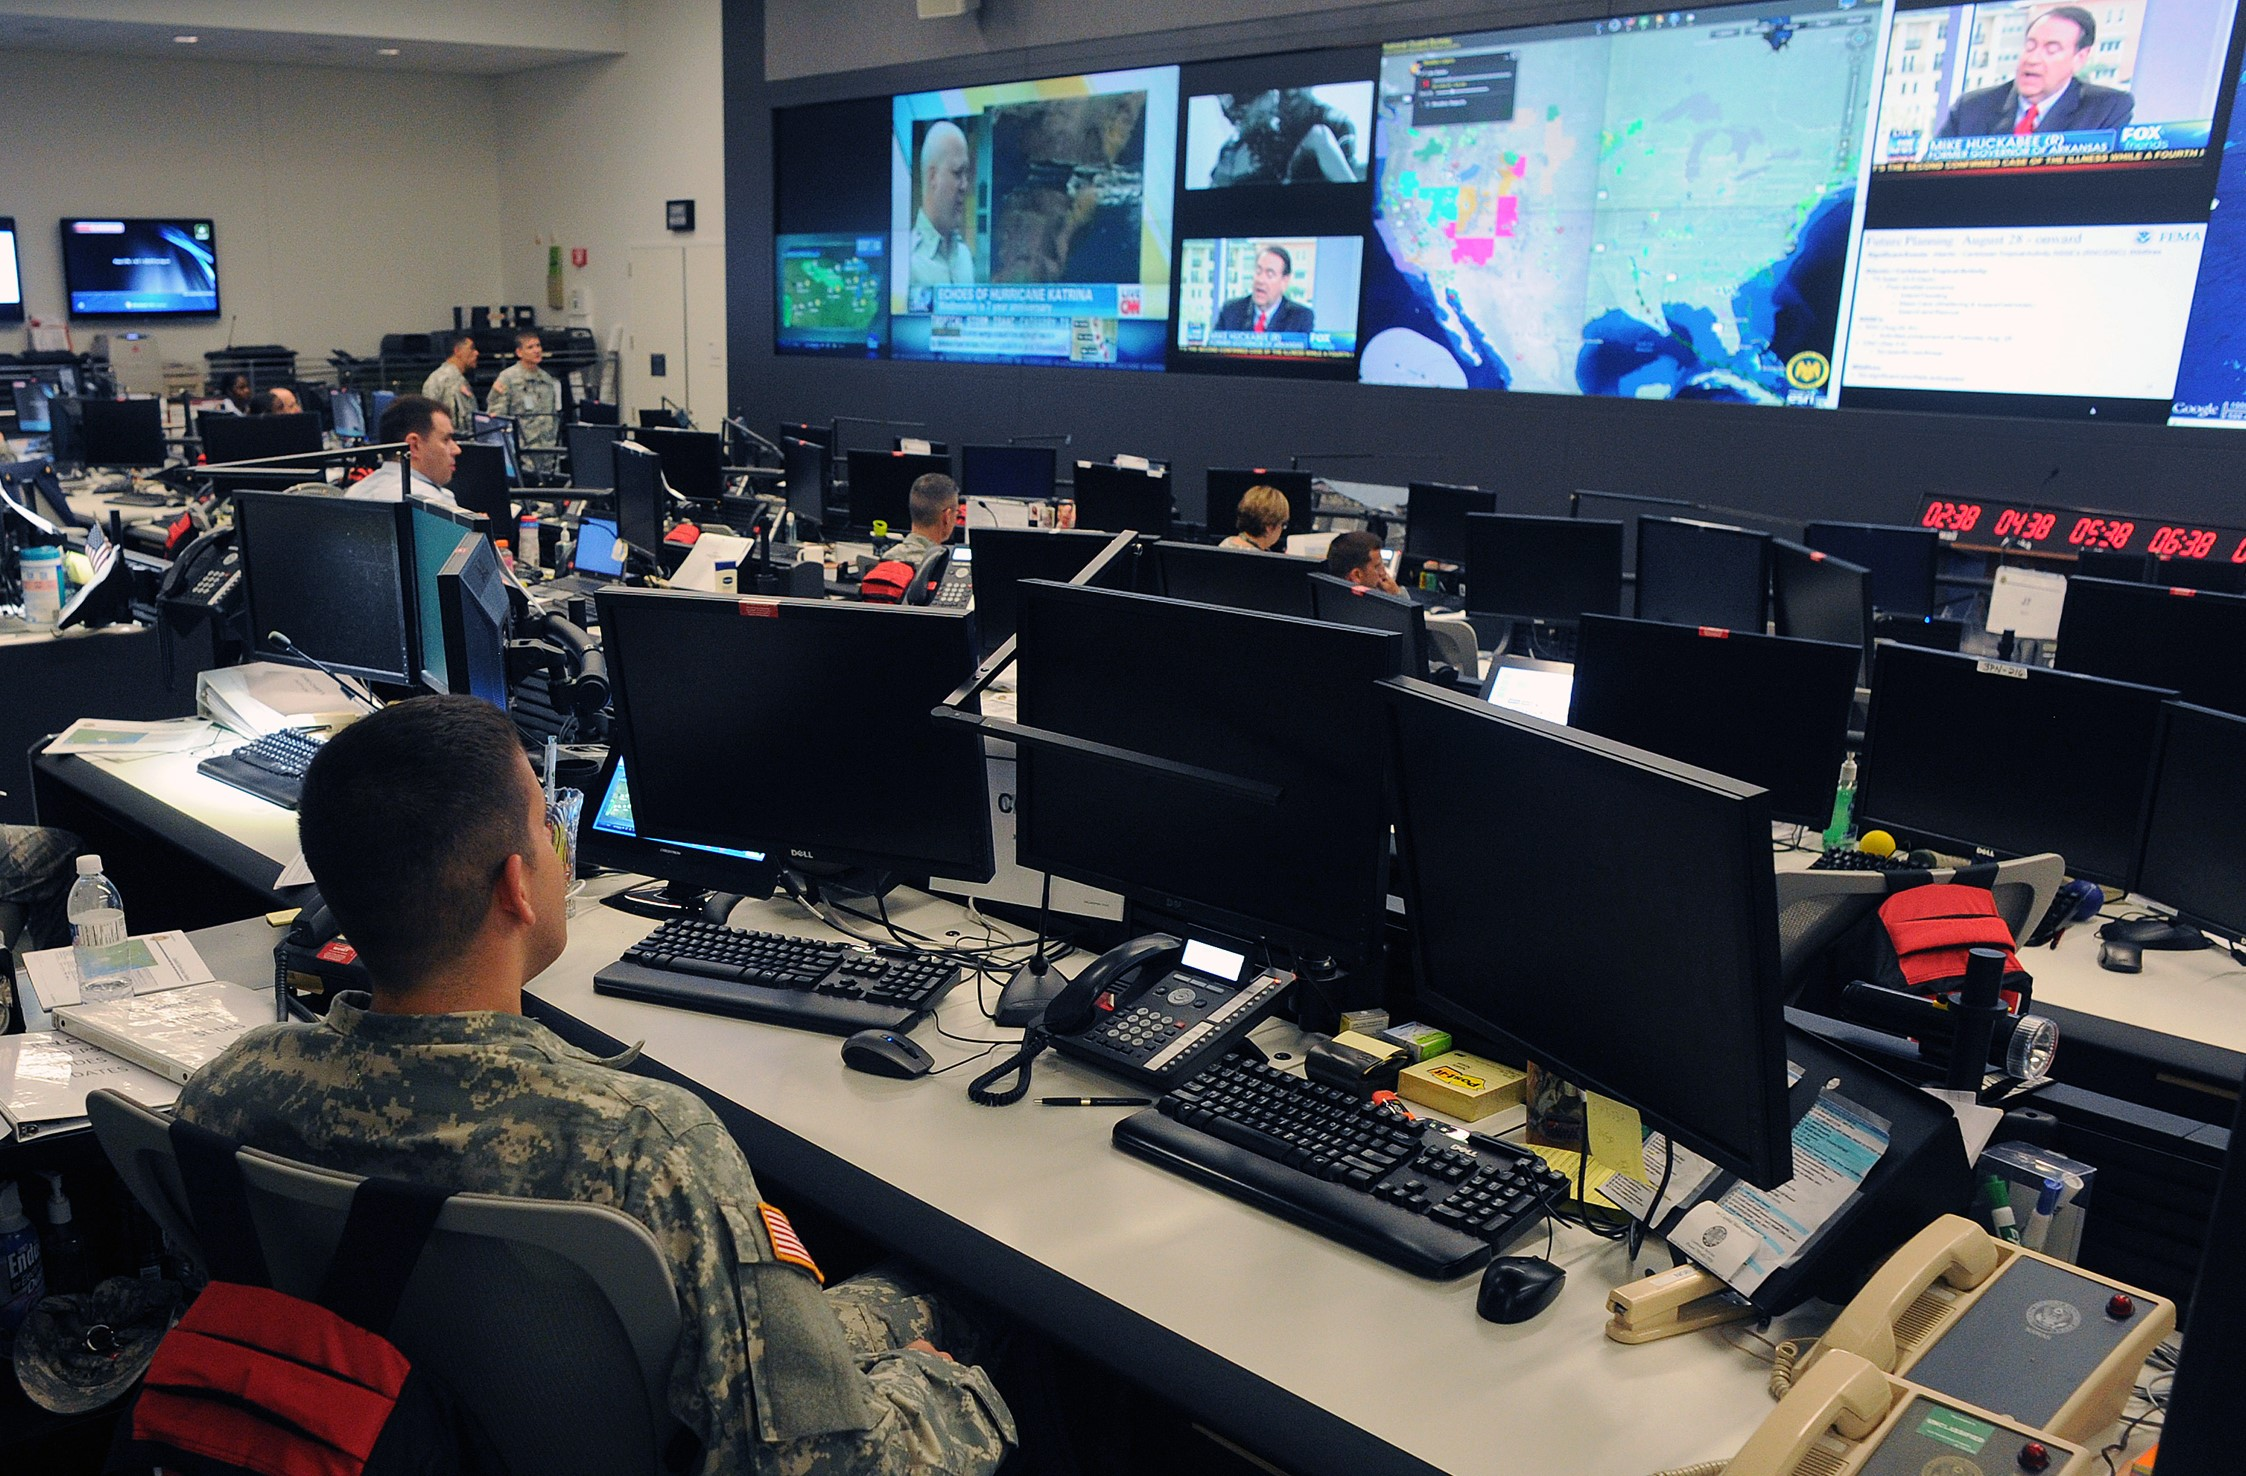 U.S. military personnel in the National Guard Command Center in Arlington, Va., monitor the progress of Hurricane Isaac as it moves through the Gulf of Mexico Aug. 28, 2012. Isaac developed as a tropical storm over the western Atlantic Ocean Aug. 21, 2012, affecting Puerto Rico, the Dominican Republic, Haiti and Cuba before making landfall as a hurricane on the Gulf Coast of the United States. (U.S. Army photo by Sgt. 1st Class Jon Soucy/Released)